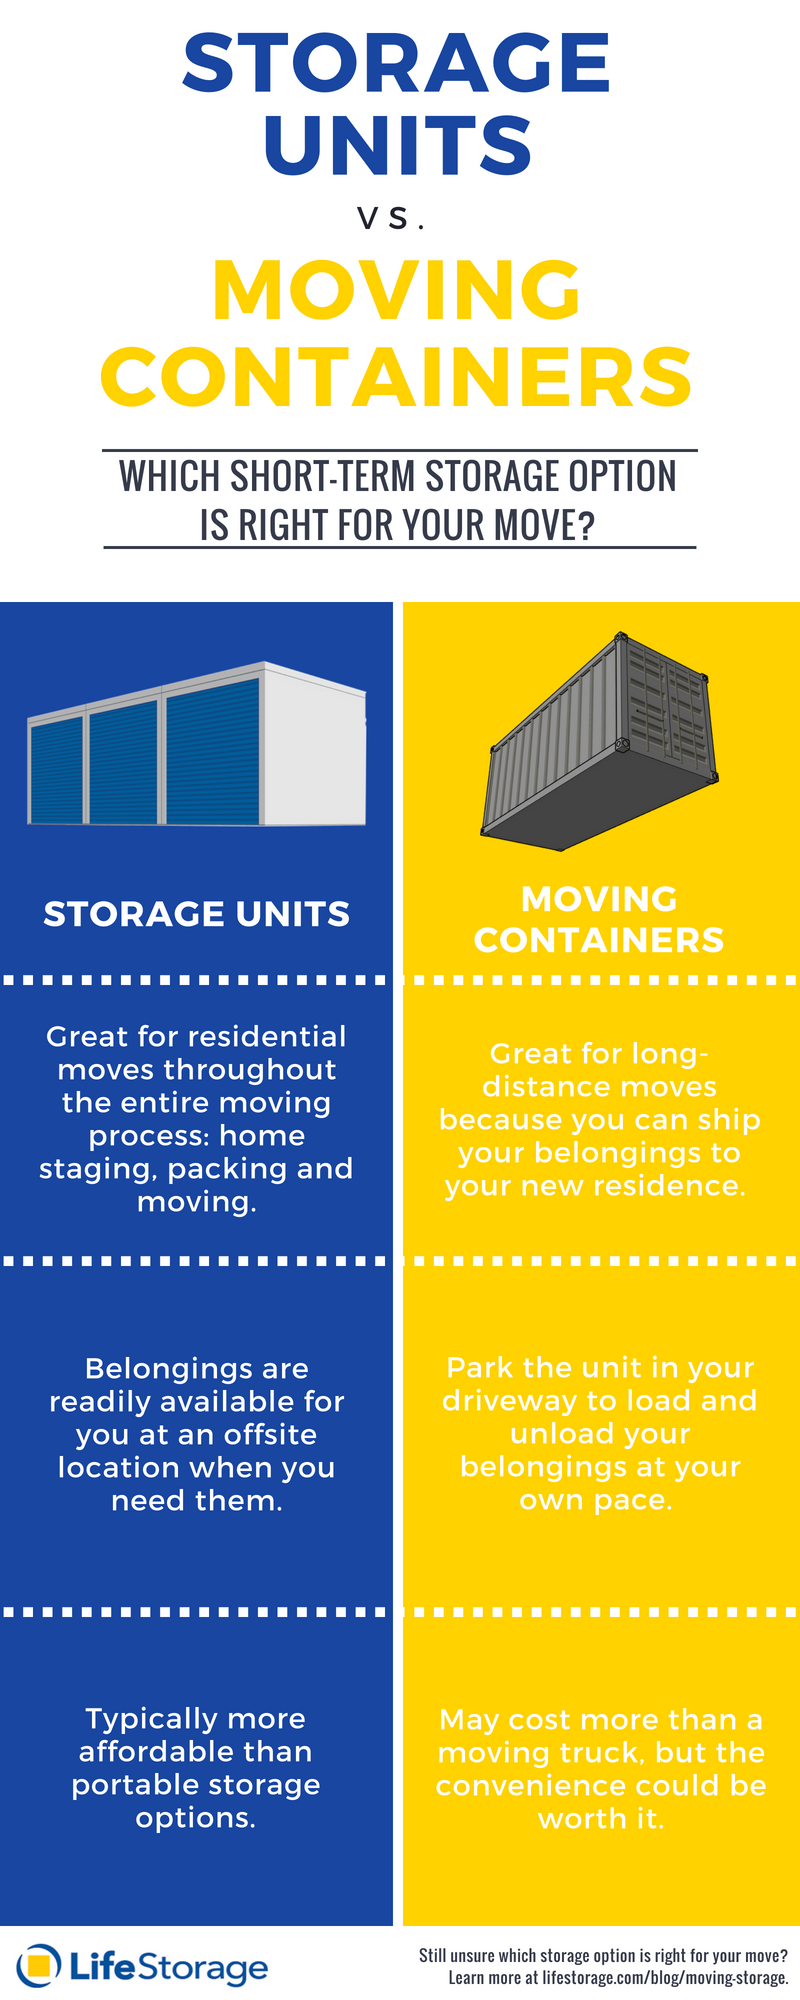 Storage for Moving - Storage Units Versus Moving Containers Infographic